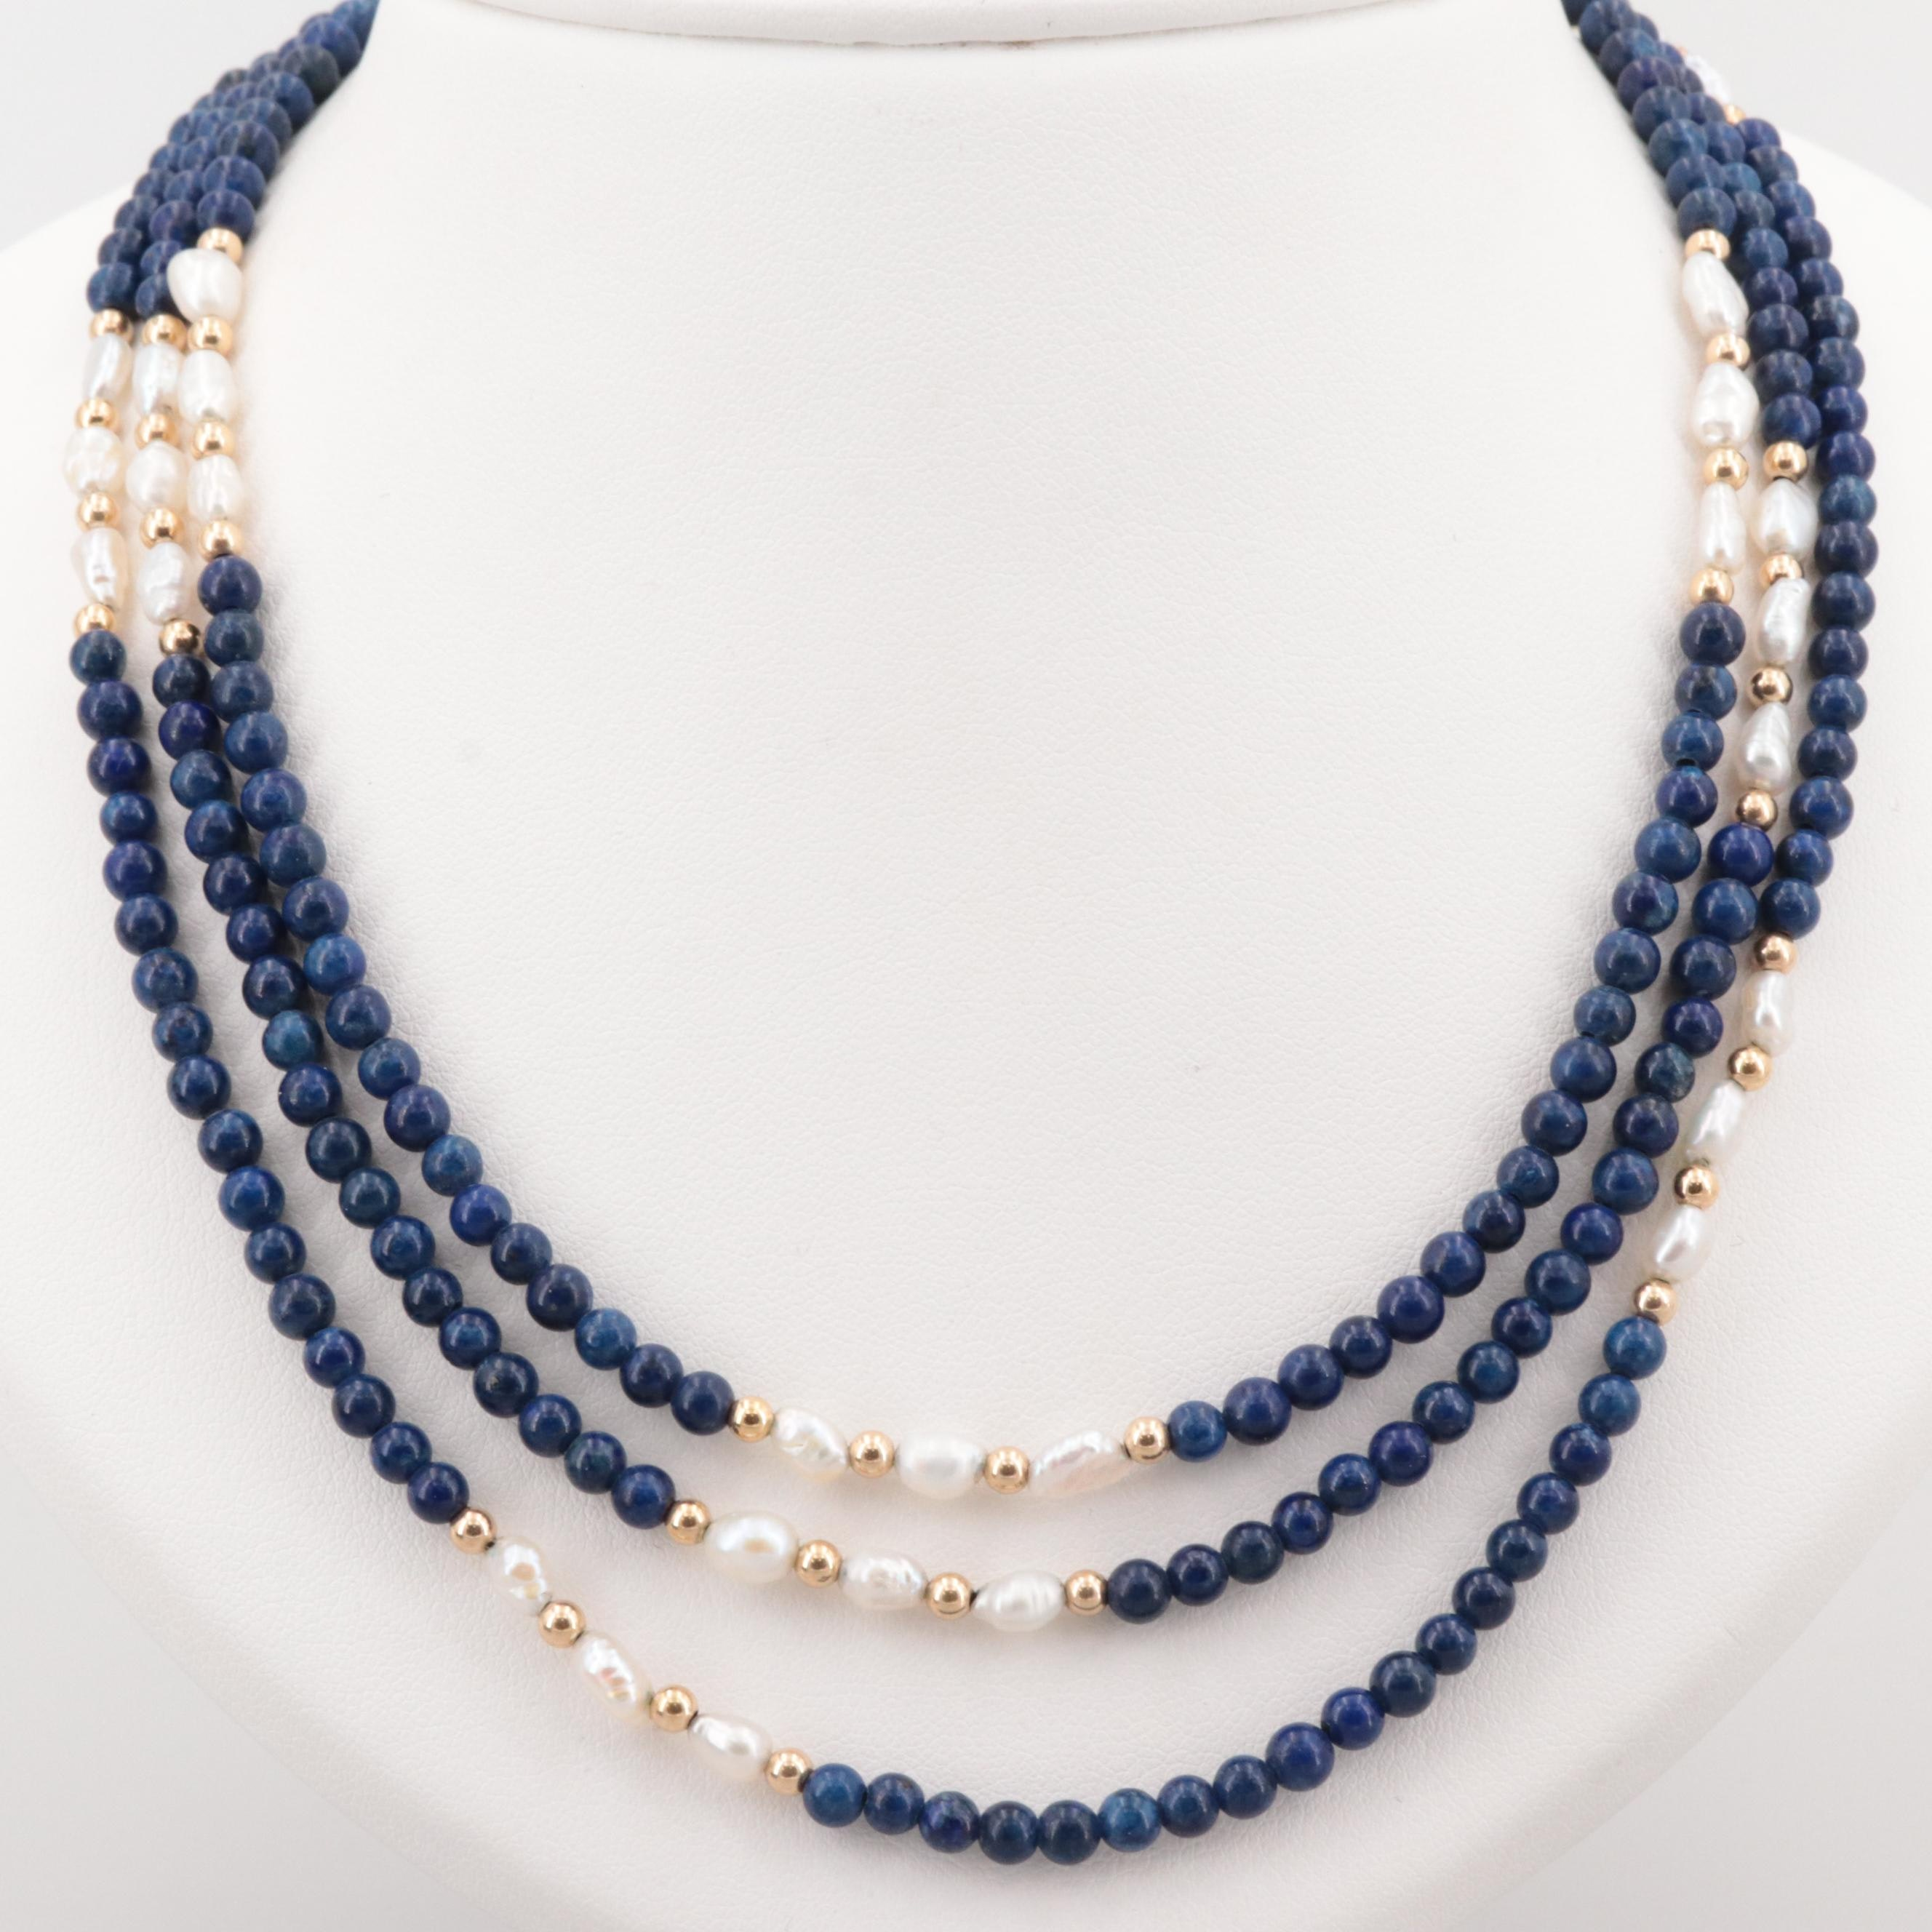 14K Yellow Gold Lapis Lazuli and Cultured Pearl Three Strand Necklace